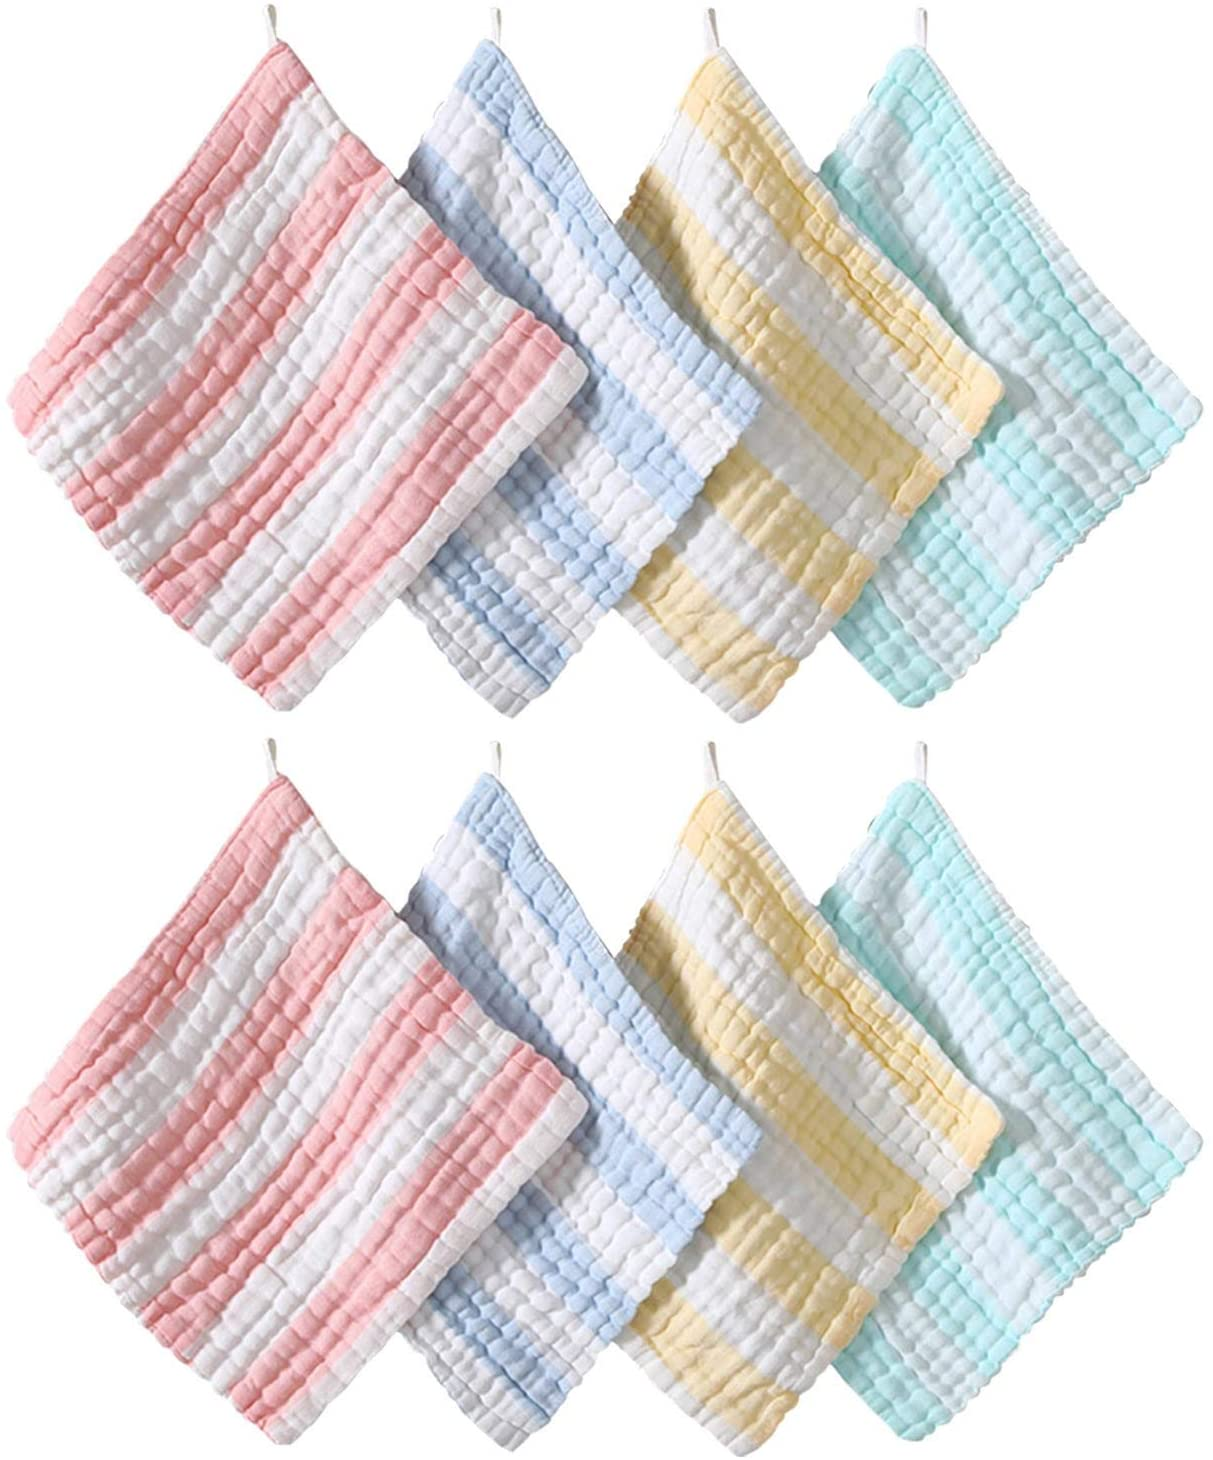 BEIYOULE 8PCS BABY MUSLIN WASHCLOTHS - SOFT NEWBORN BABY FACE TOWEL AND MUSLIN WASHCLOTH FOR SENSITIVE SKIN FEEDING WIPE,SHOWER GIFT COTTON BLEND FACE TOWEL